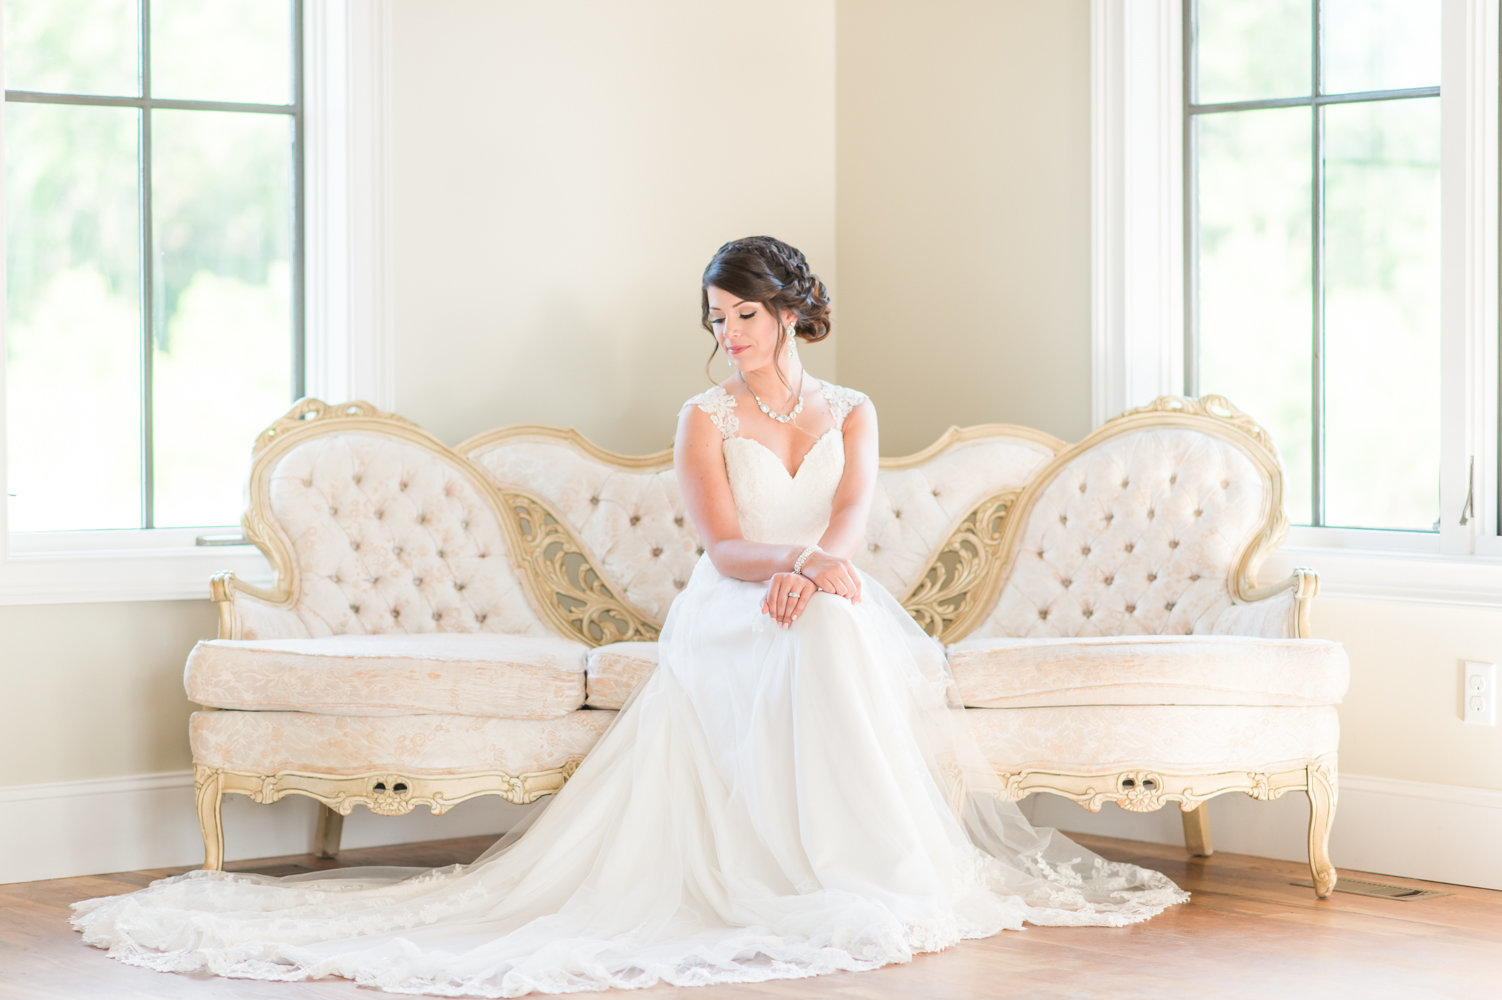 bridal-portraits-christina-forbes-photography-12